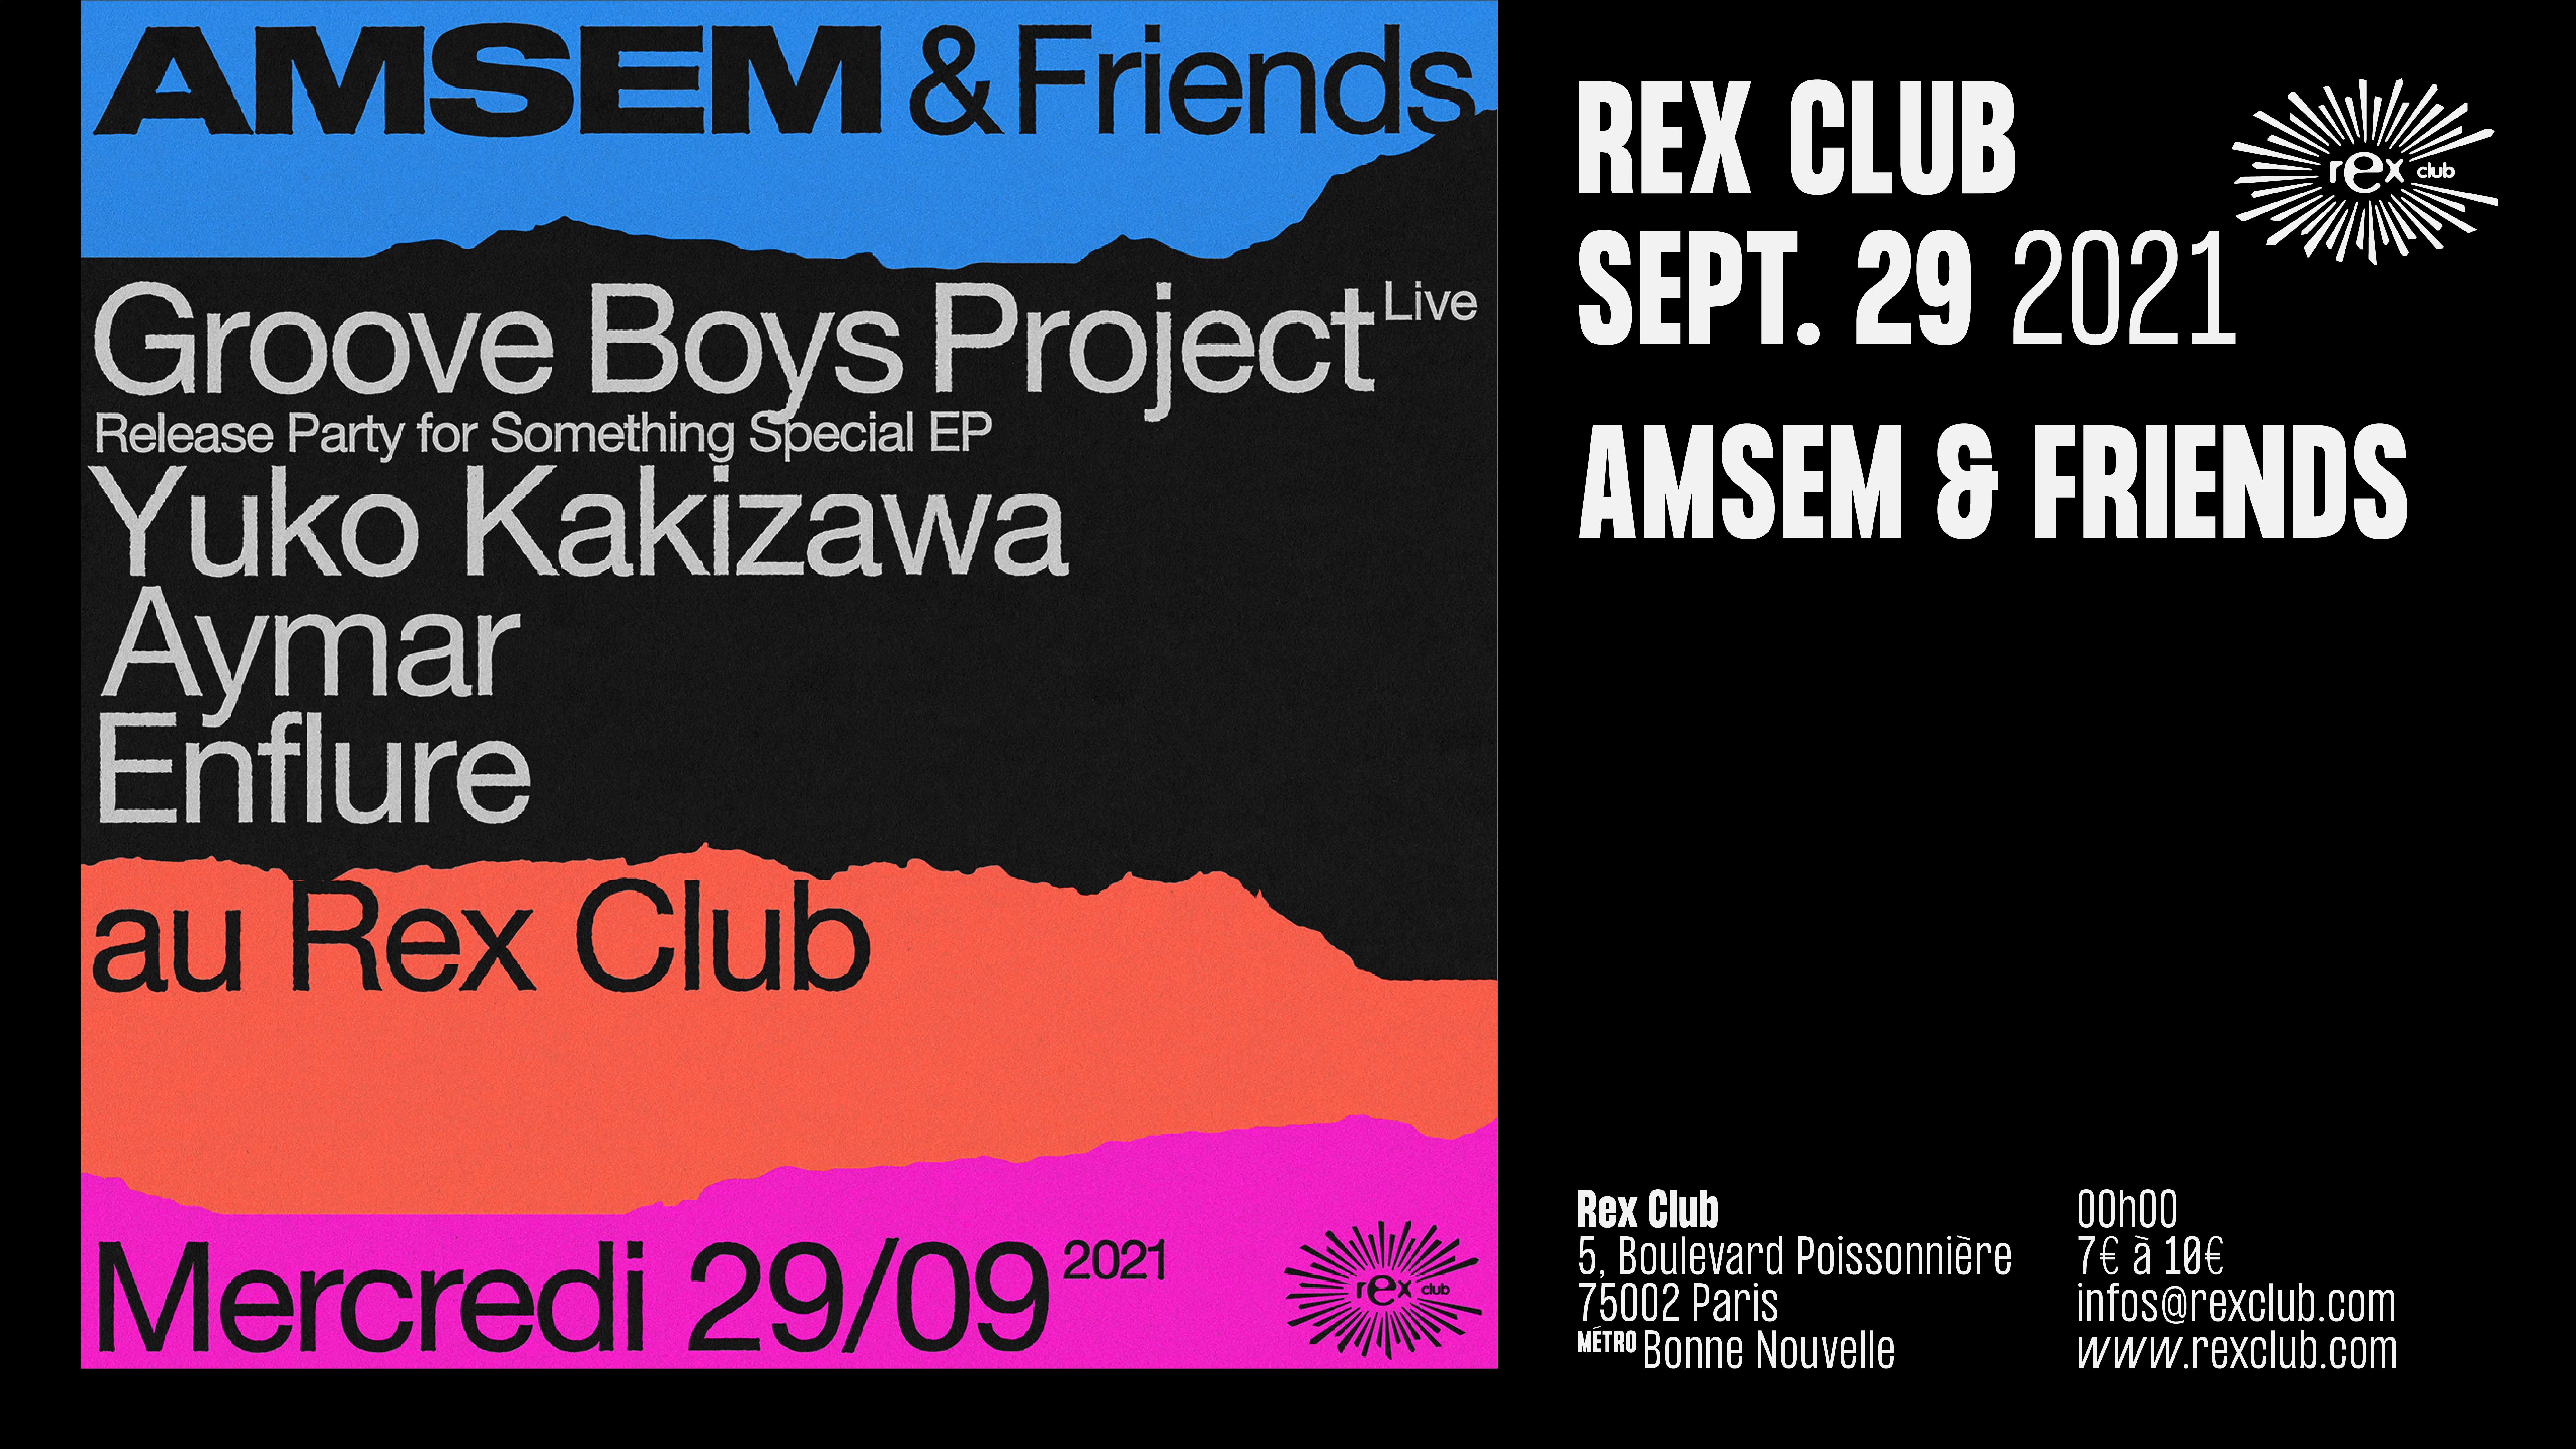 AMSEM & FRIENDS: GROOVE BOYS PROJECT PROJECTS Live